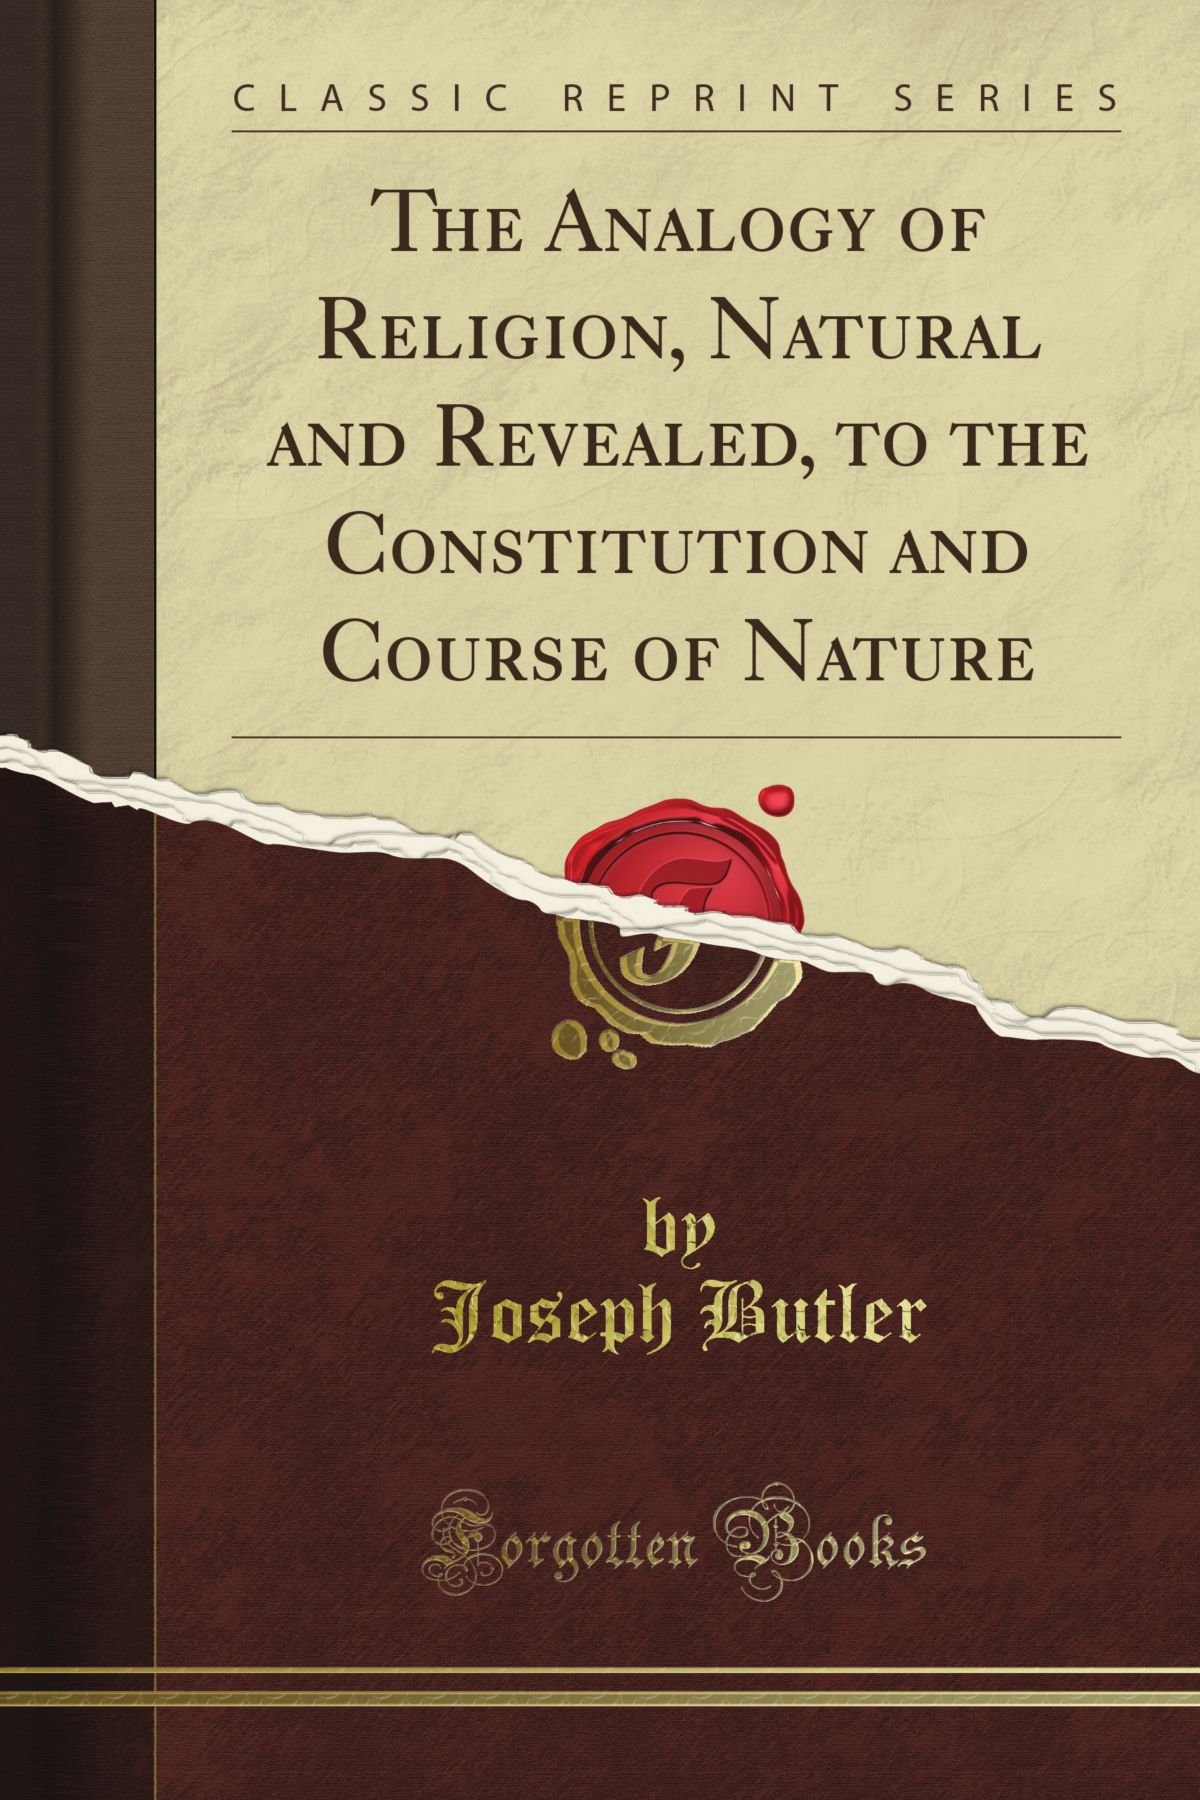 The Analogy of Religion, Natural and Revealed, to the Constitution and Course of Nature (Classic Reprint) PDF